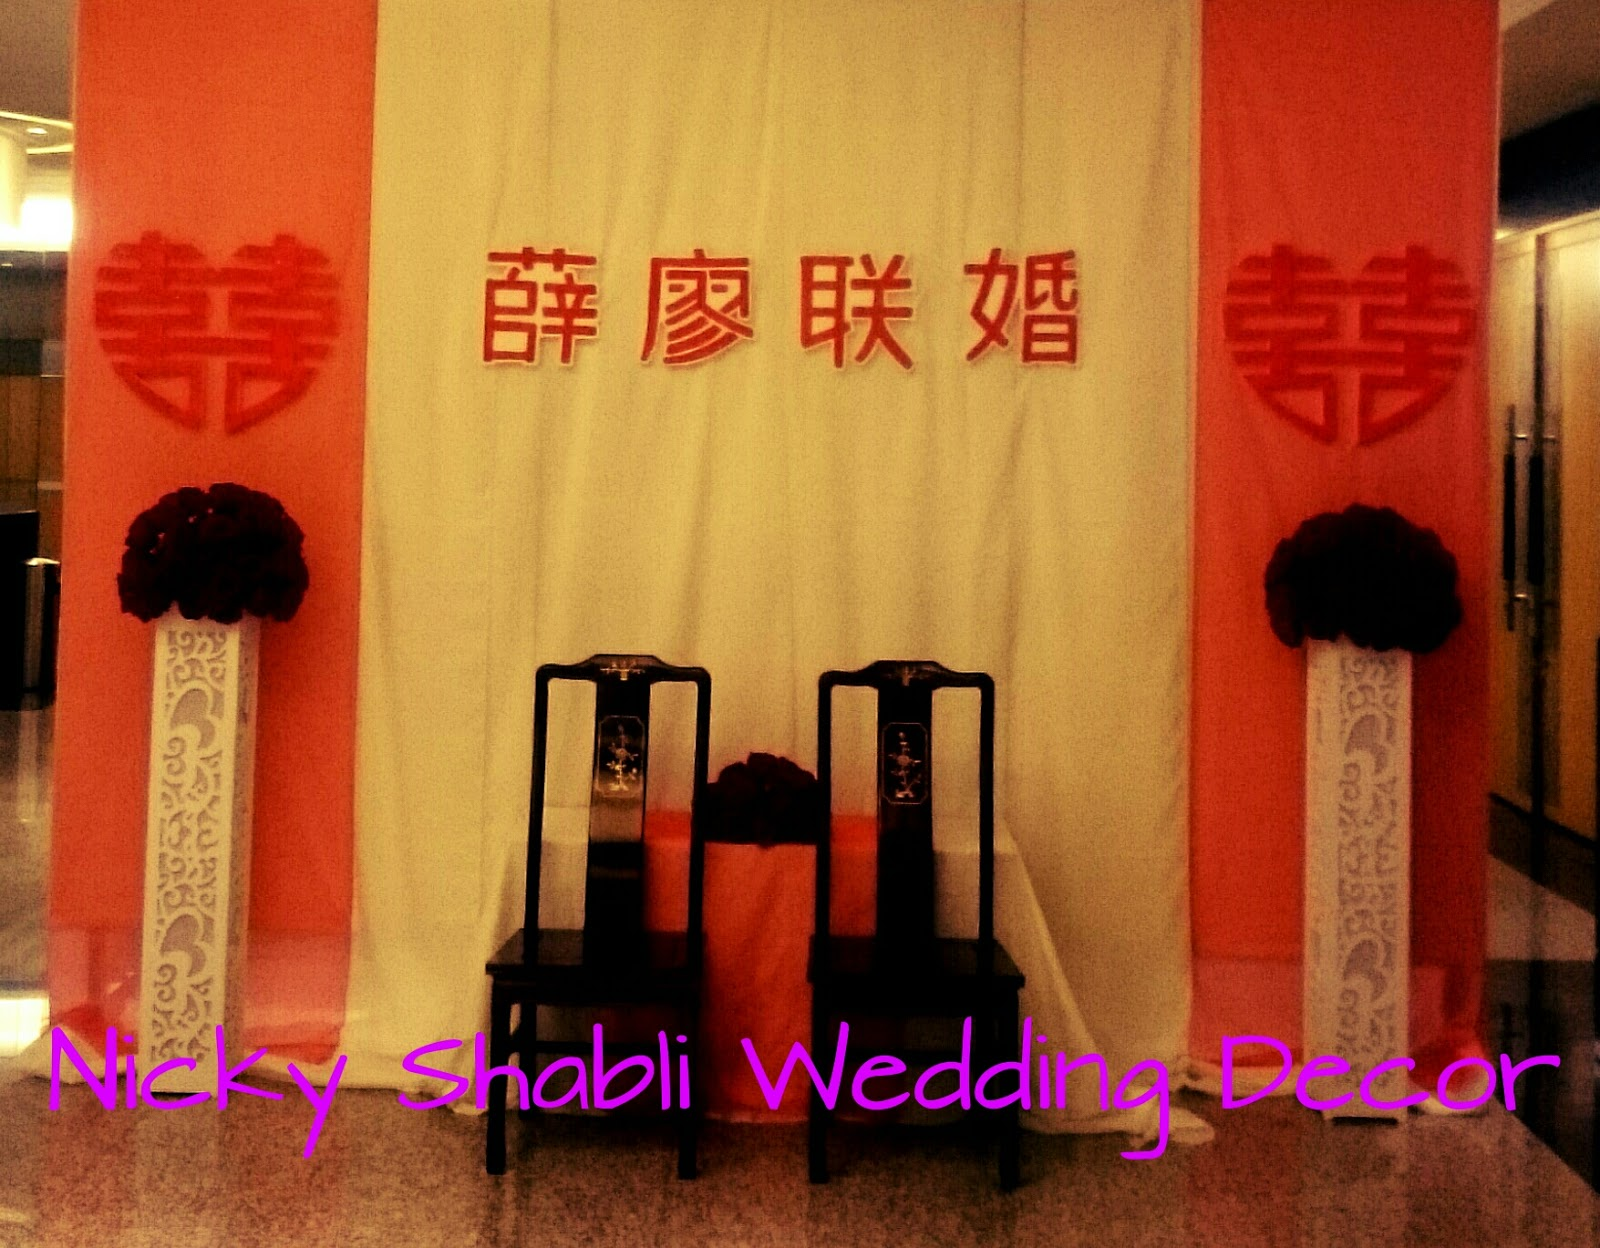 Decor Photobooth Nicky Shabli Wedding Decor Kuching Sarawak Chinese Wedding